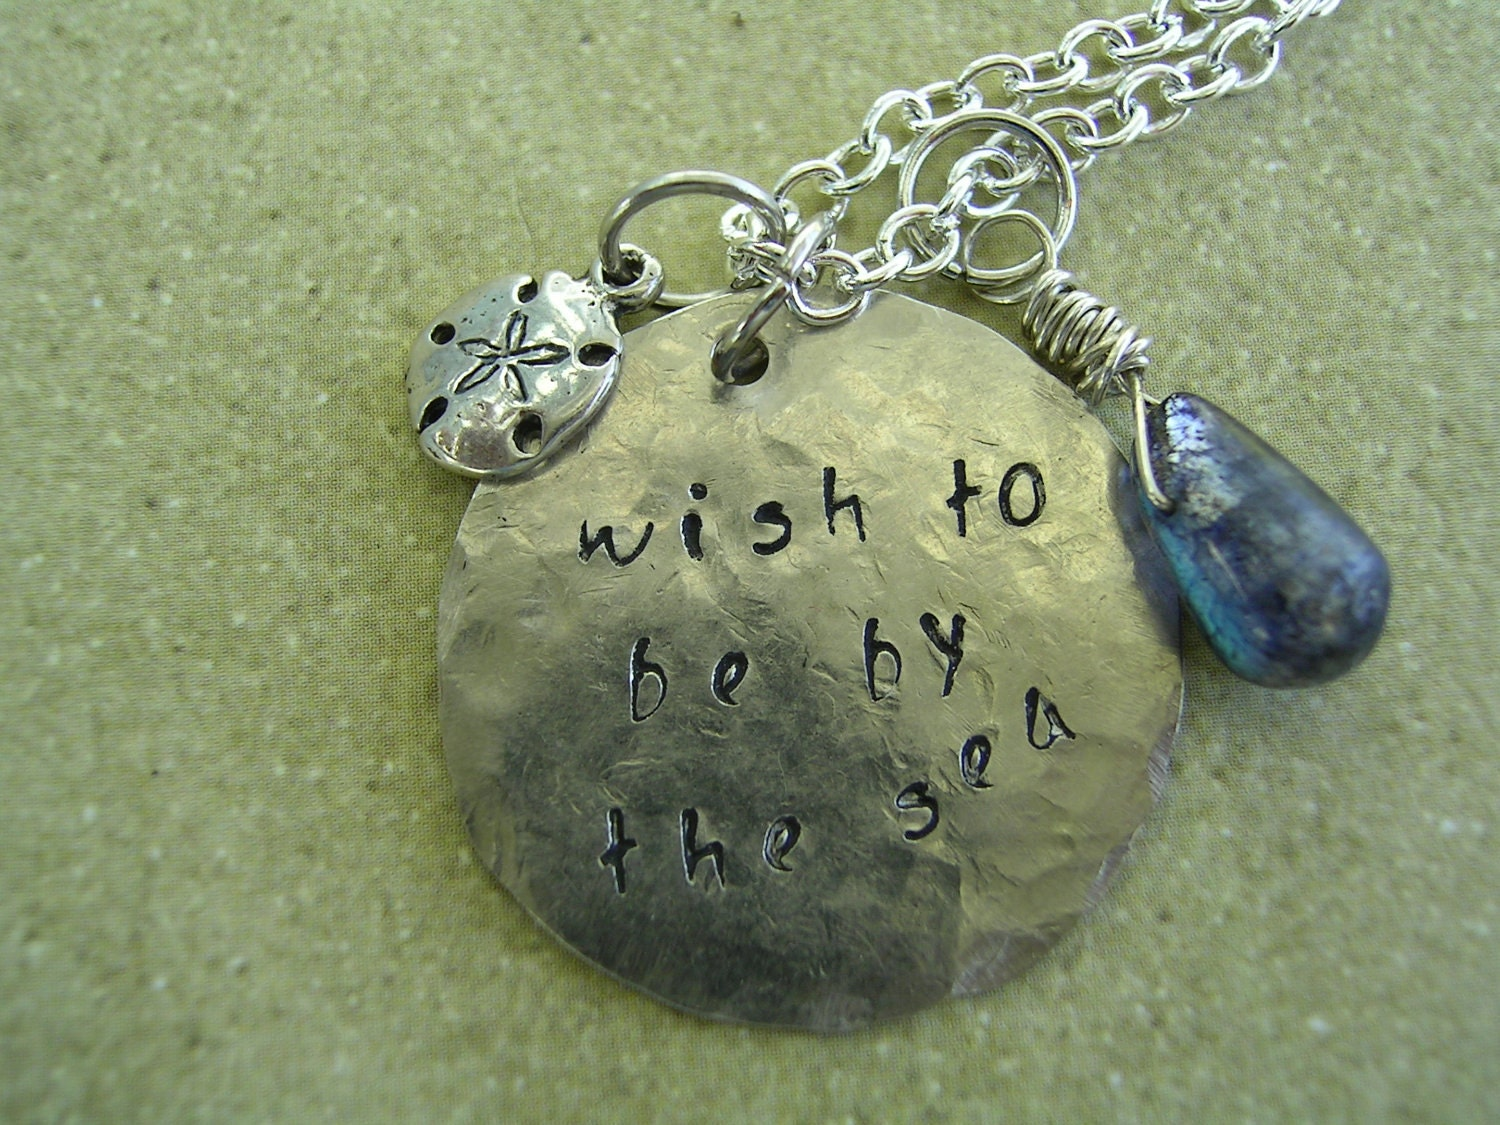 Labradorite Wish To Be By The Sea Sanddollar Necklace